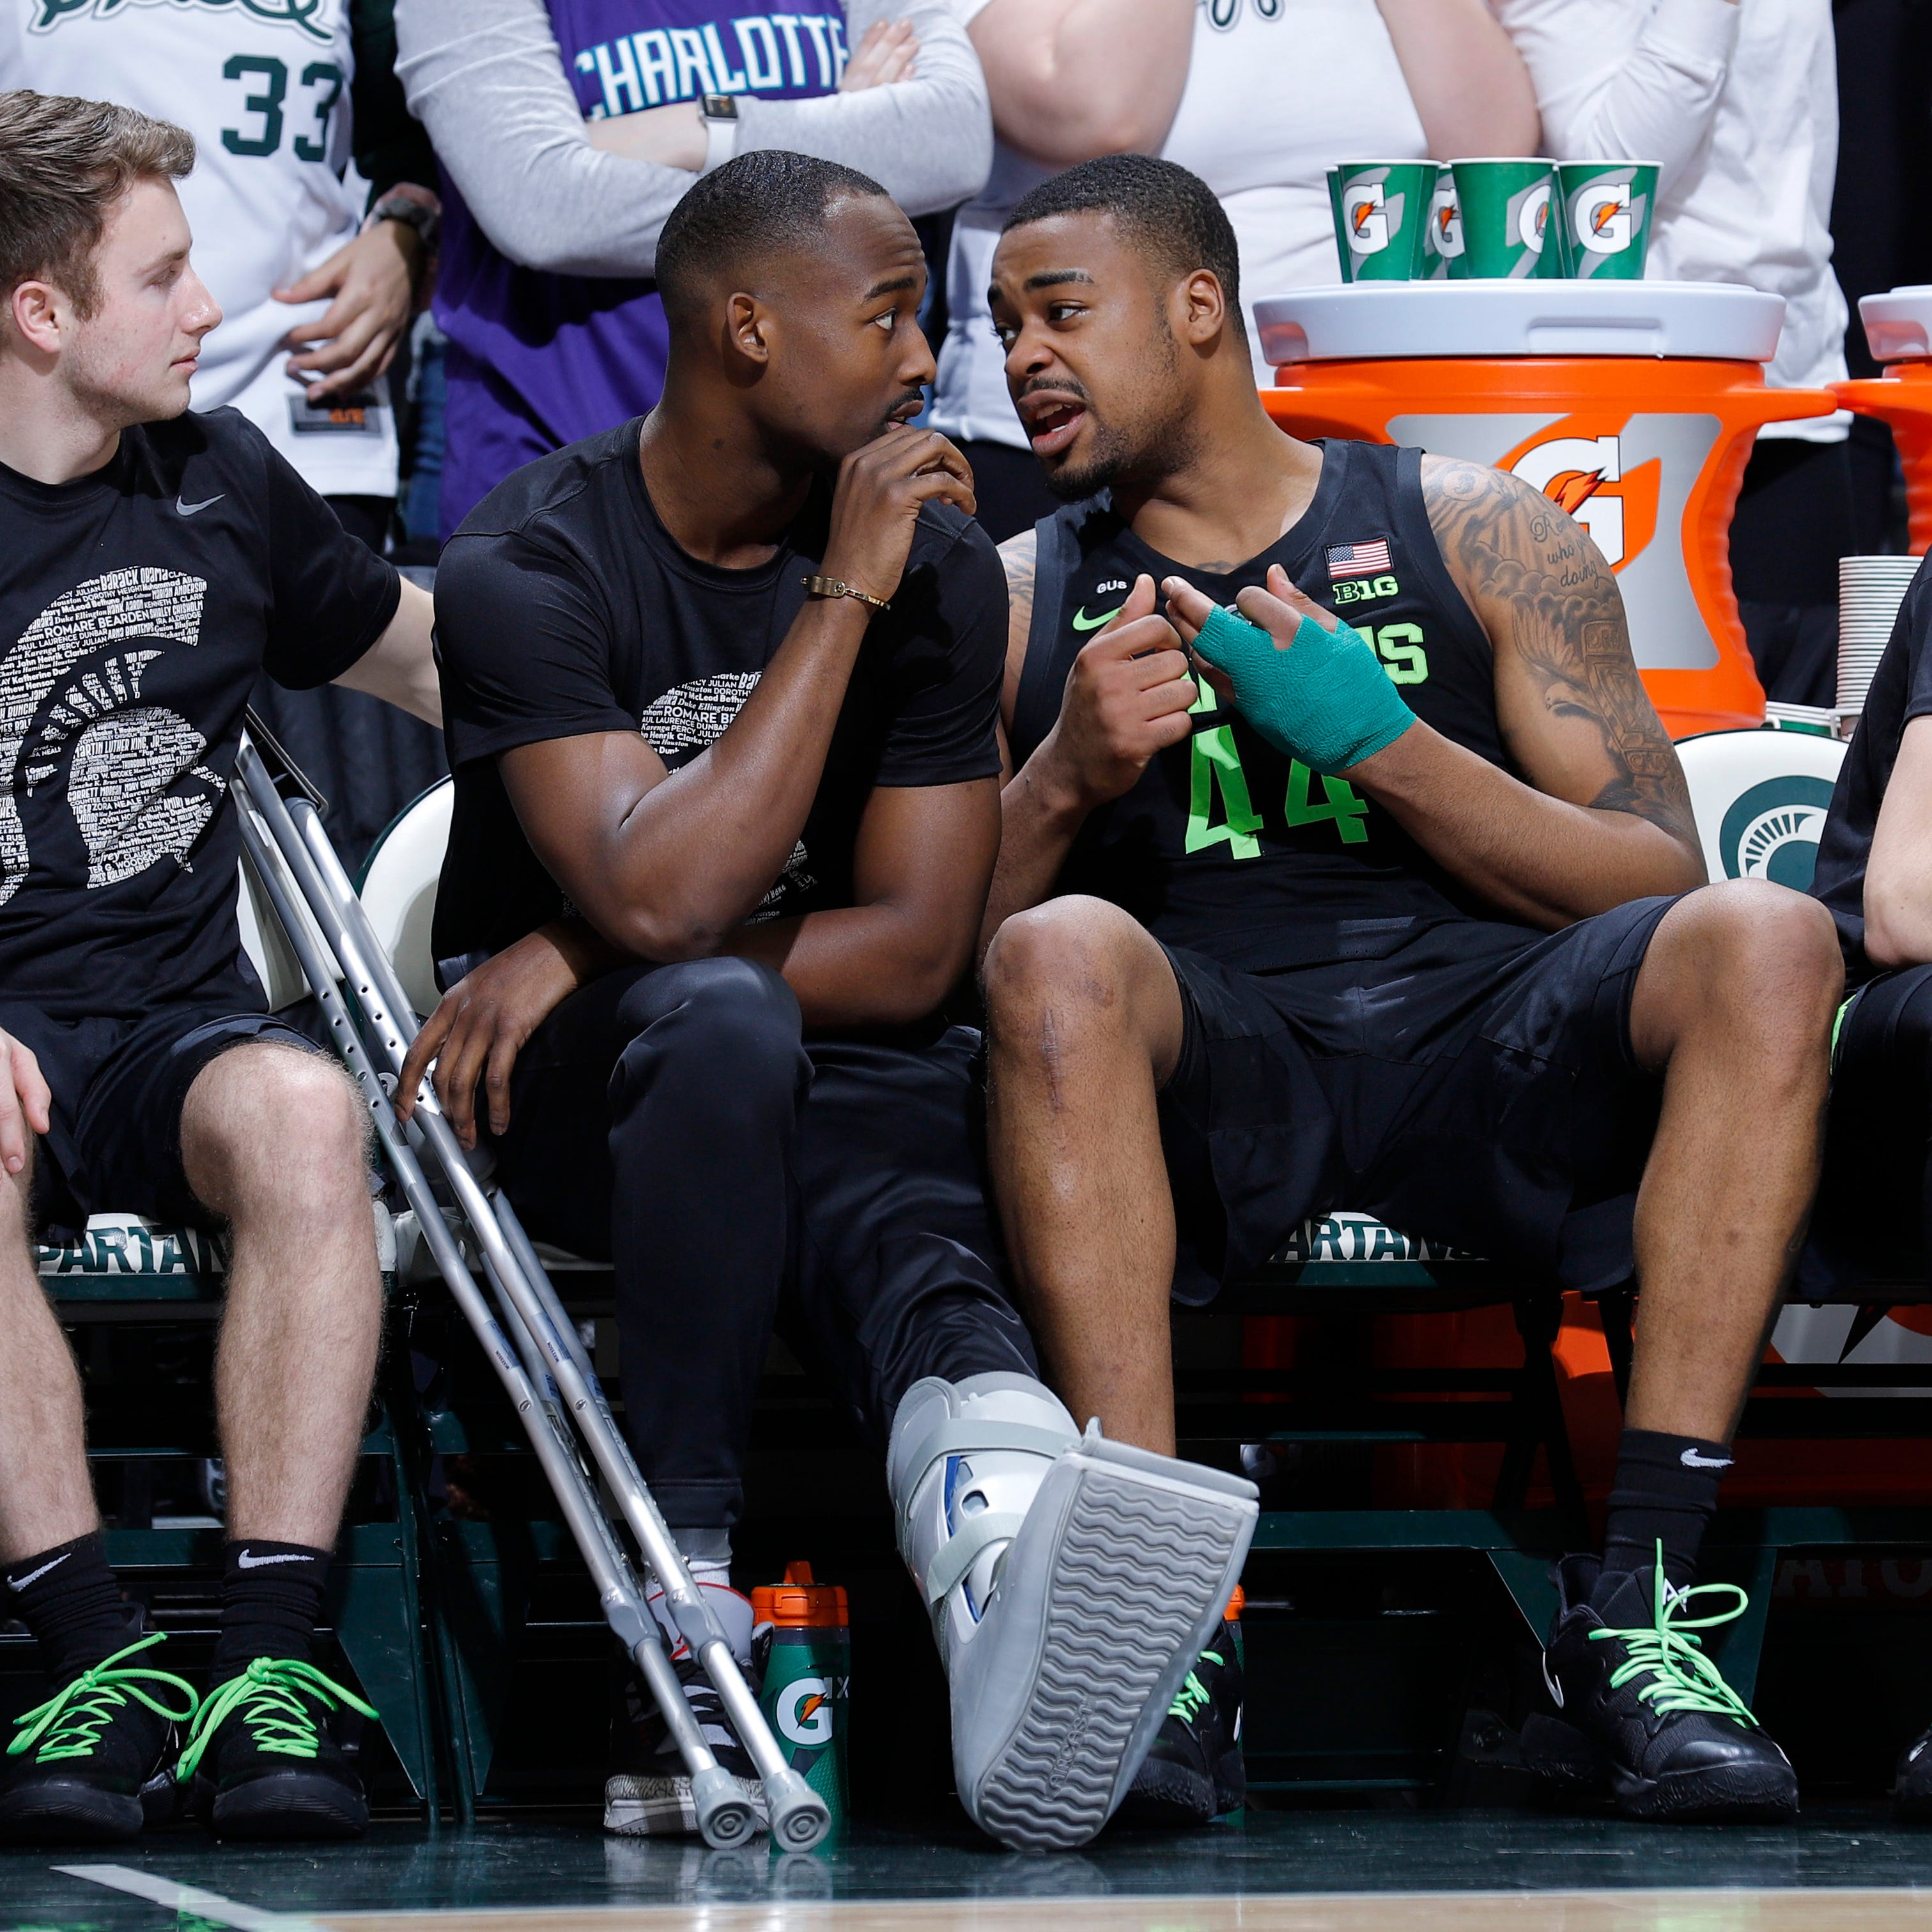 Couch: Nick Ward's injury leaves a gaping hole in the Spartans – bigger than many realize